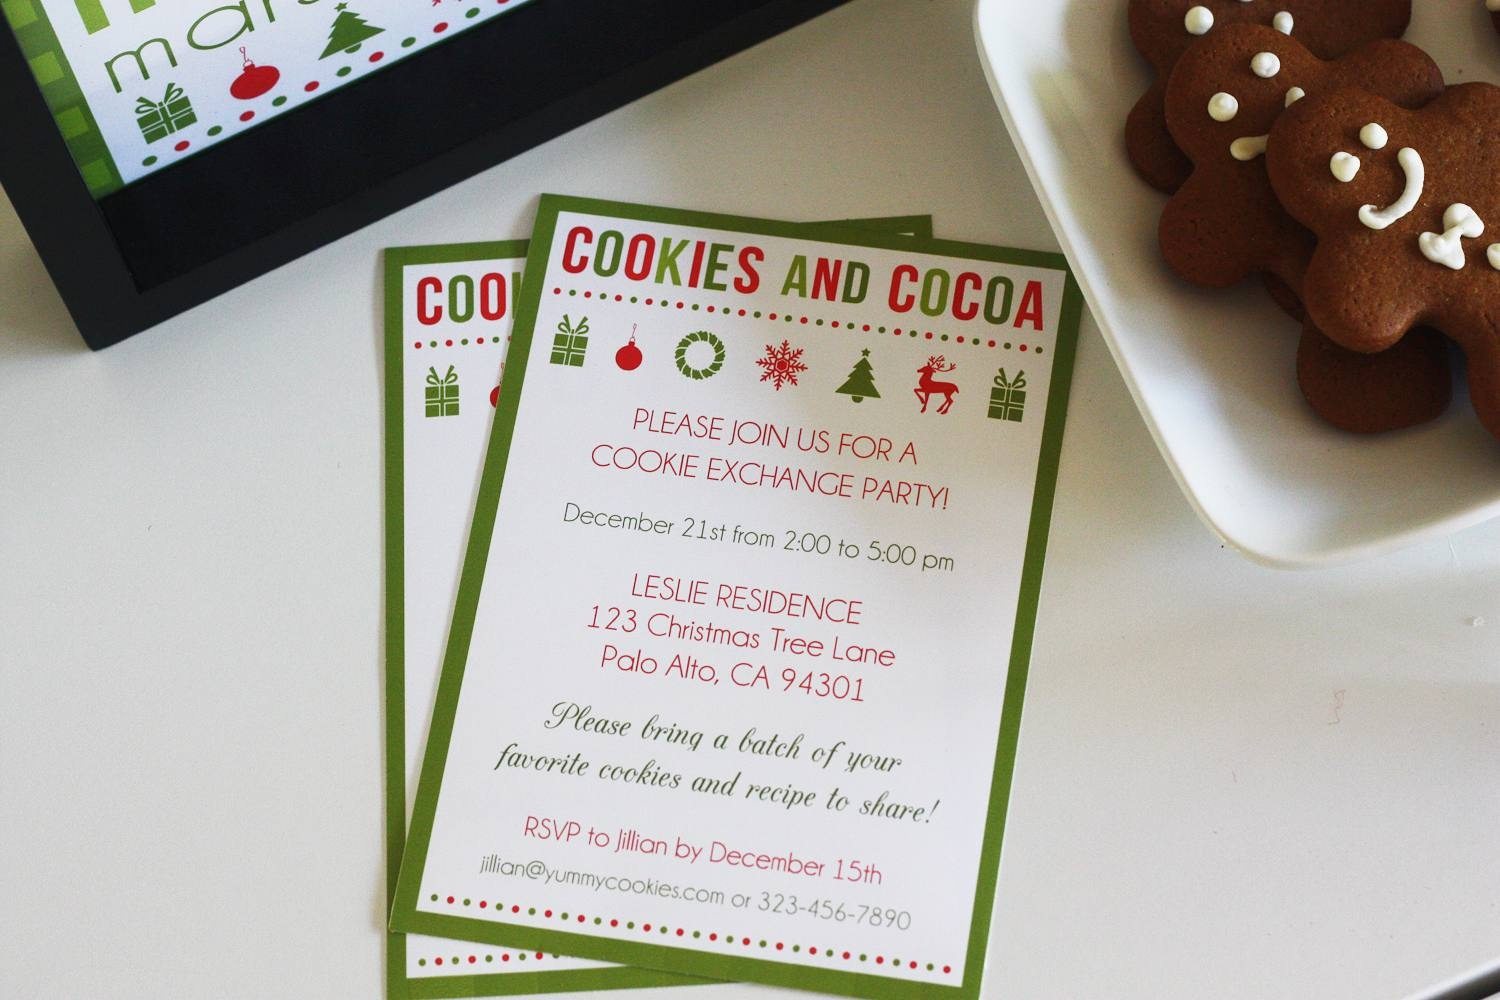 10 Free Christmas Party Invitations That You Can Print - Free Christmas Cookie Exchange Printable Invitation